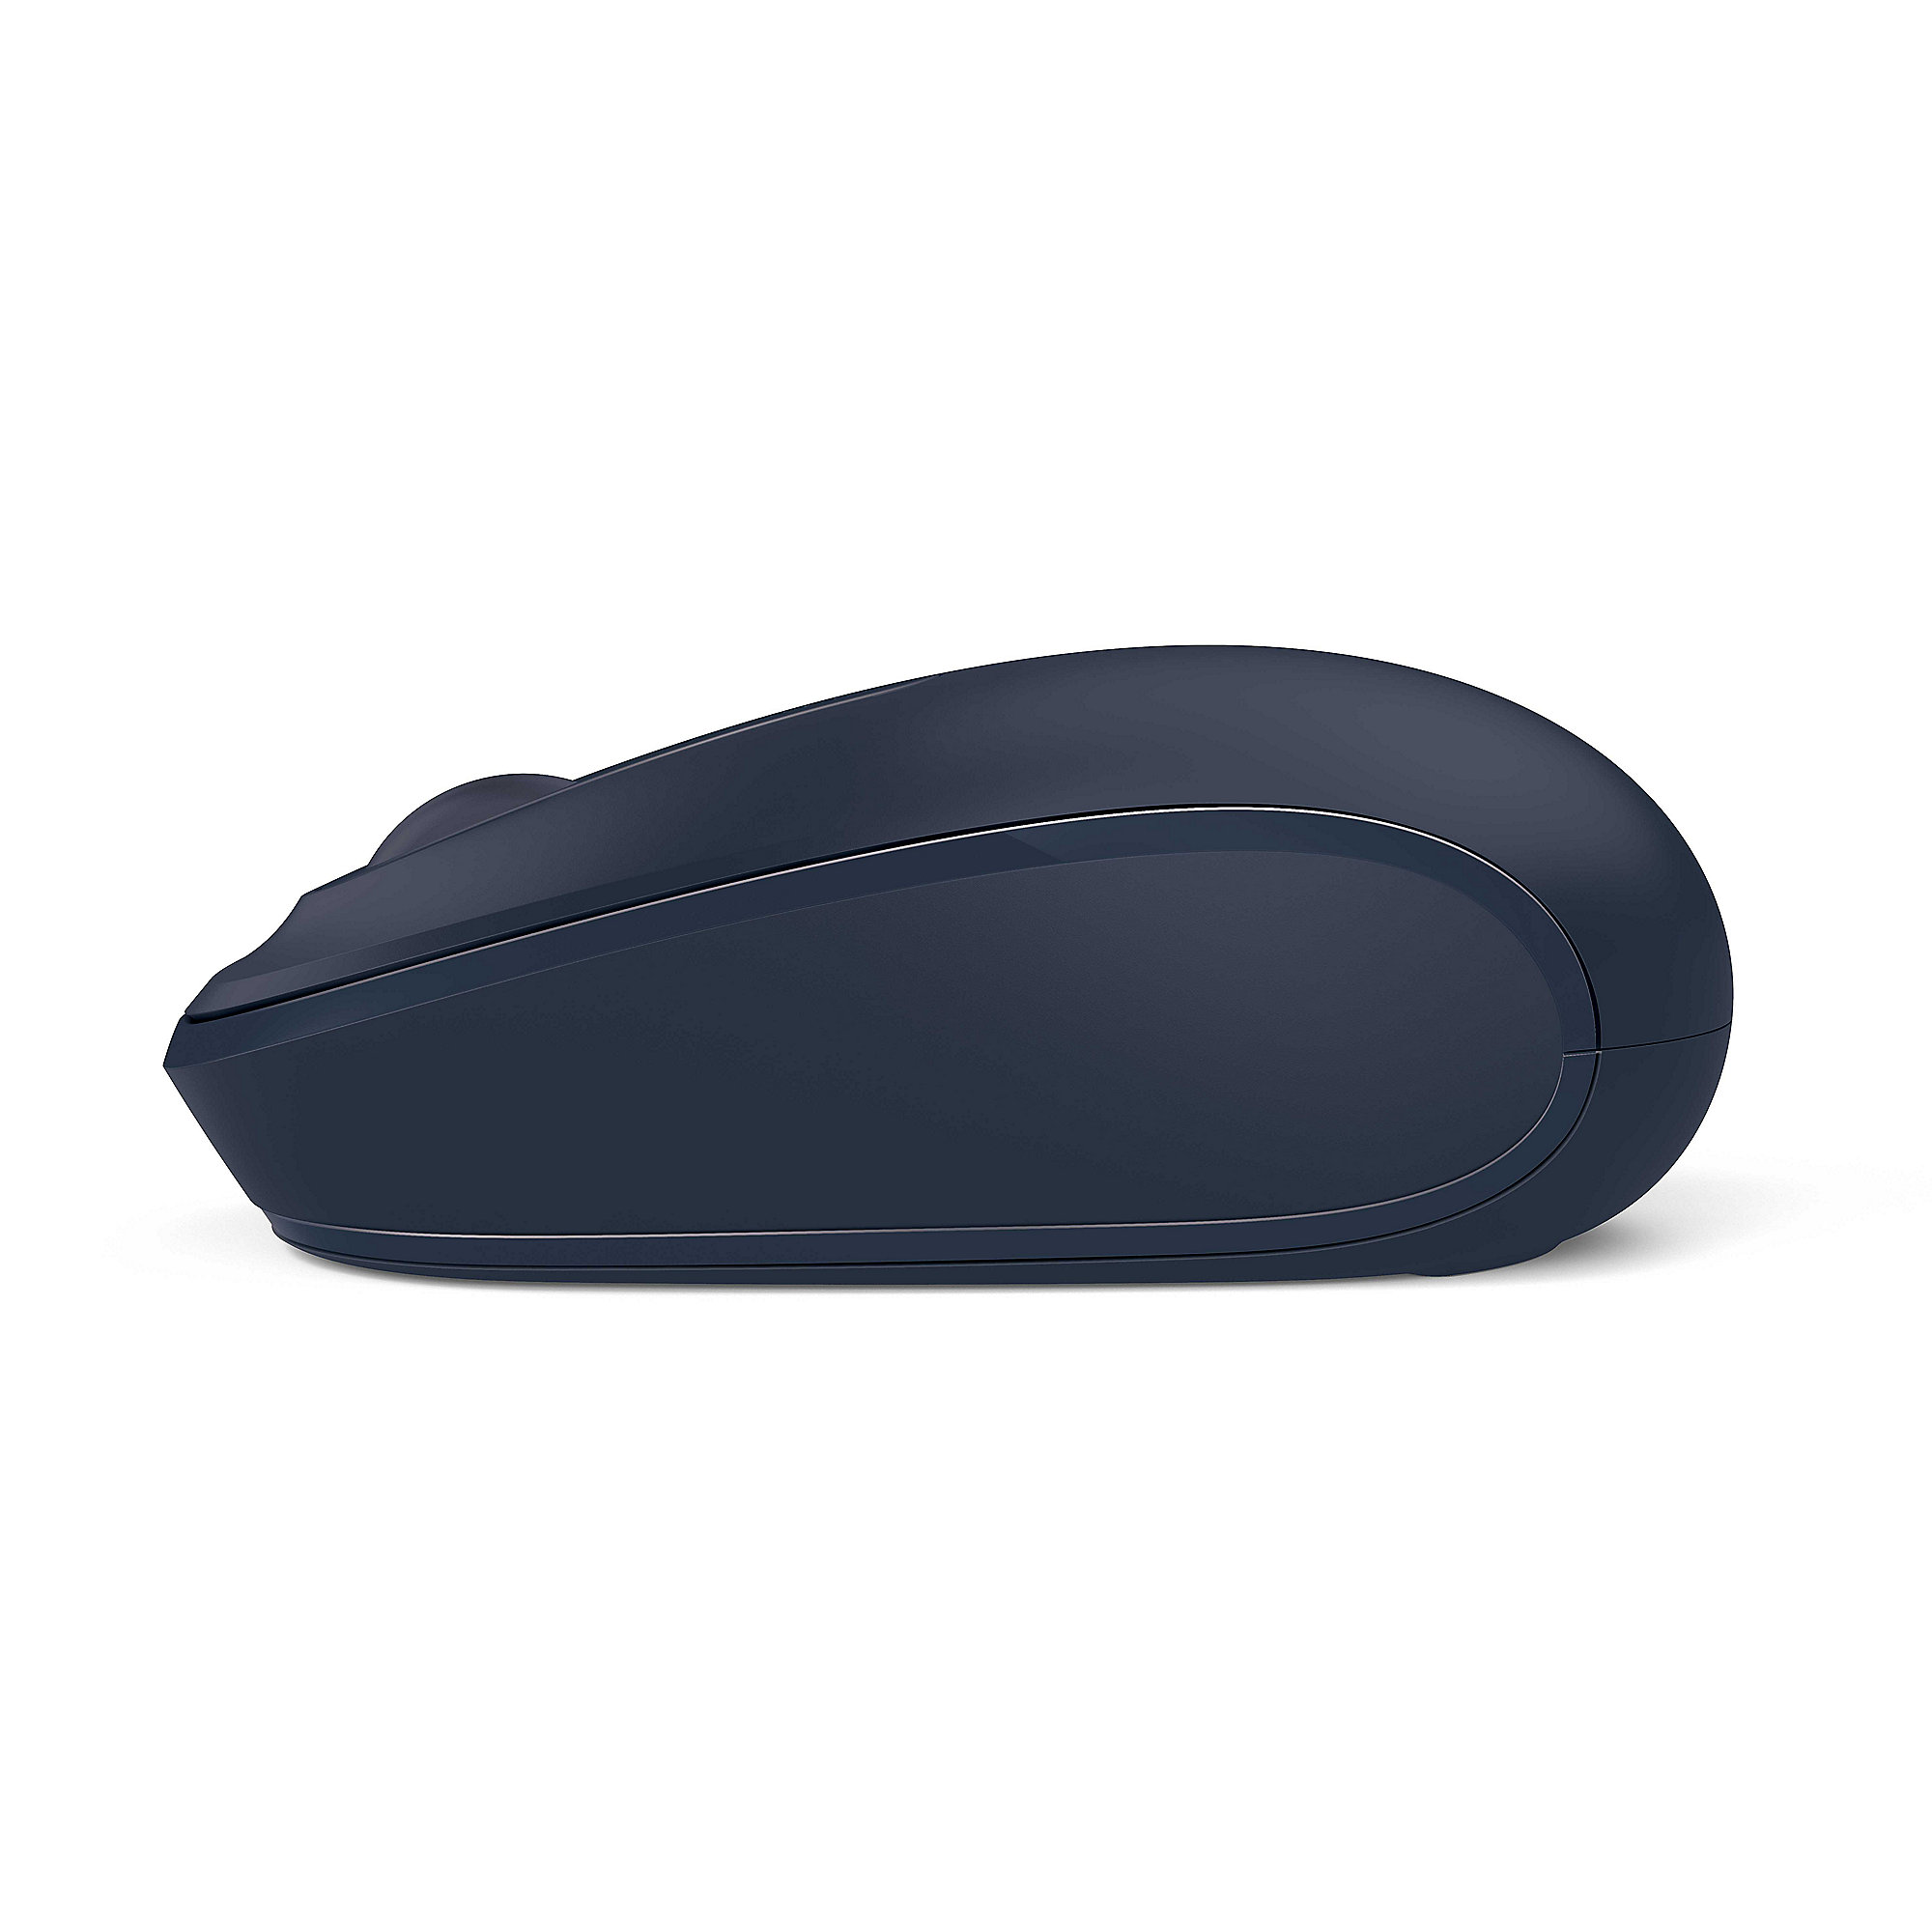 Microsoft Wireless Mobile Mouse 1850 navy blau